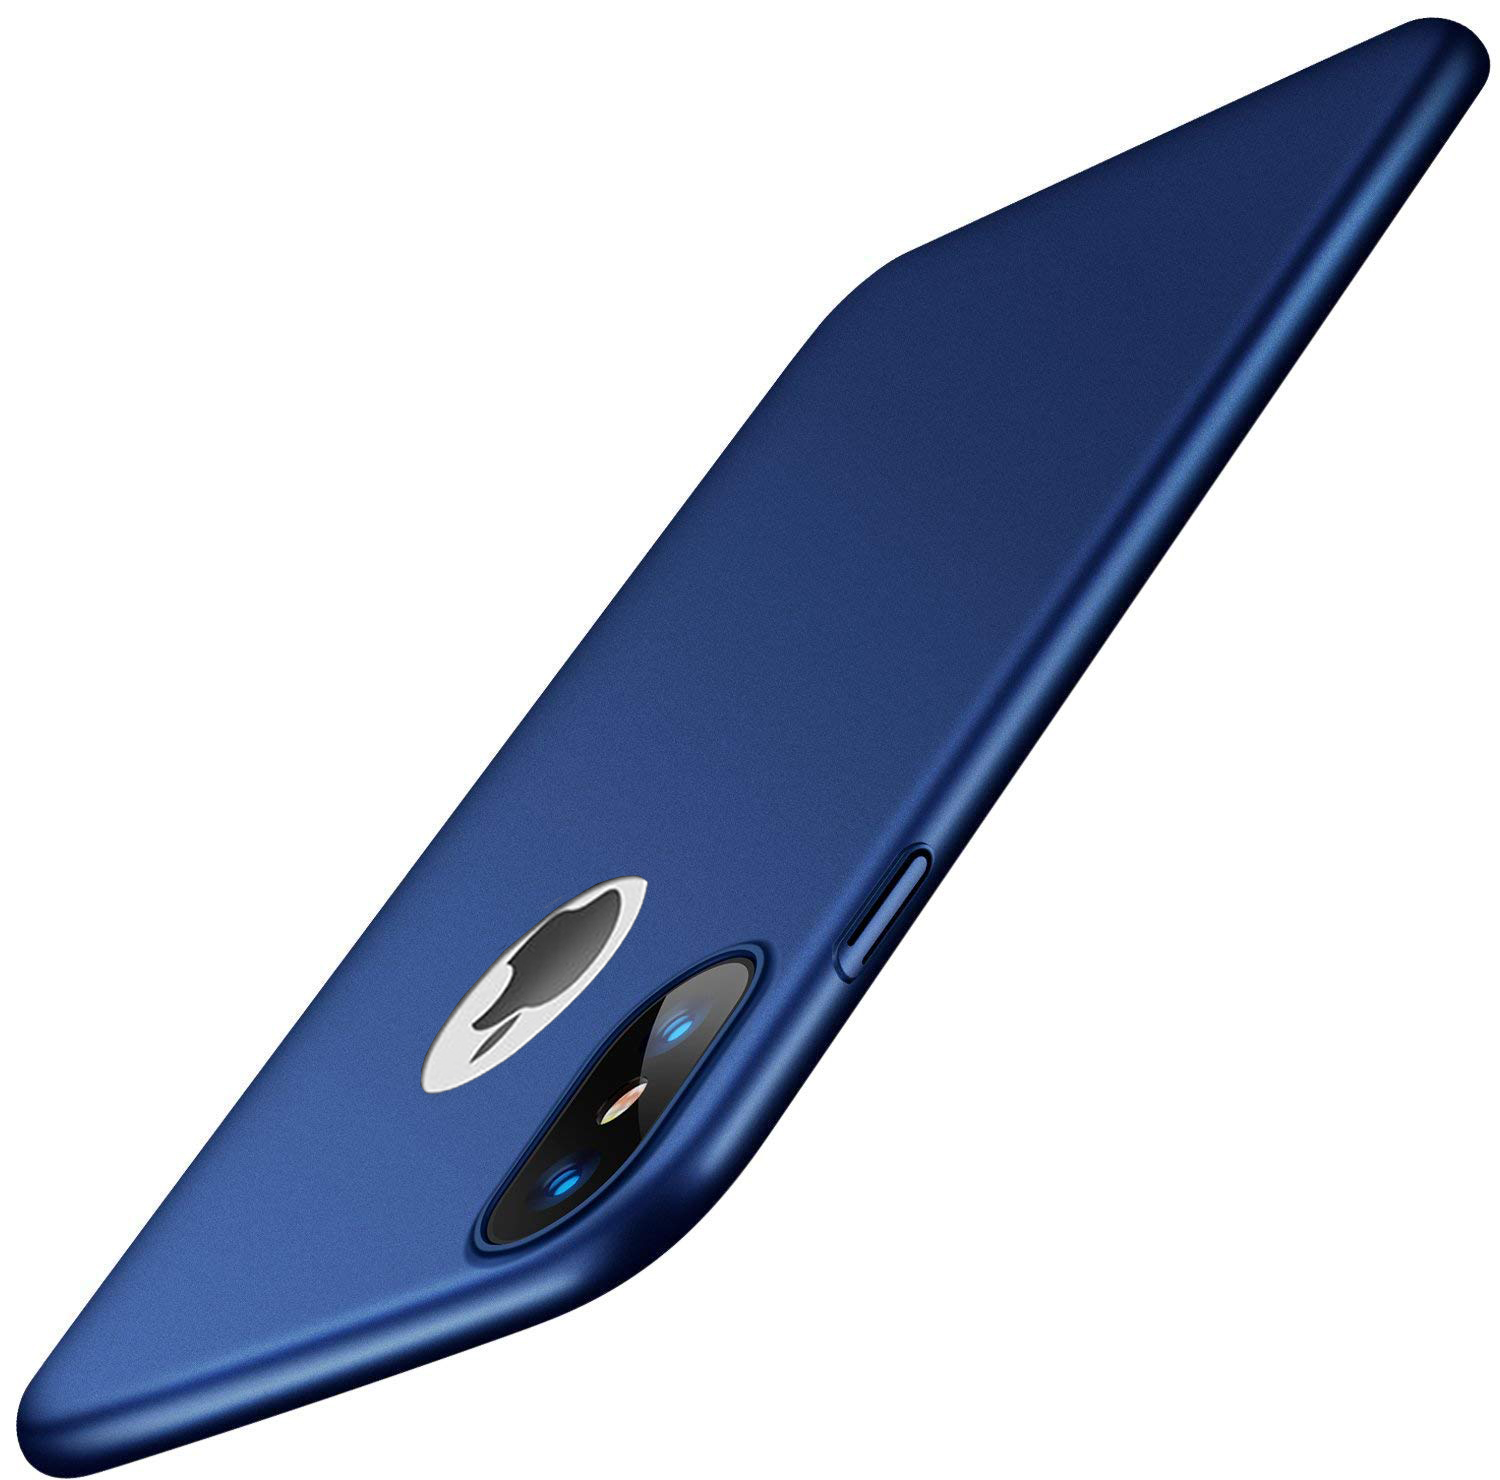 Shockproof-Hard-Back-Ultra-Thin-Slim-New-Bumper-Case-Cover-For-Apple-iPhone-X-XR miniatuur 55